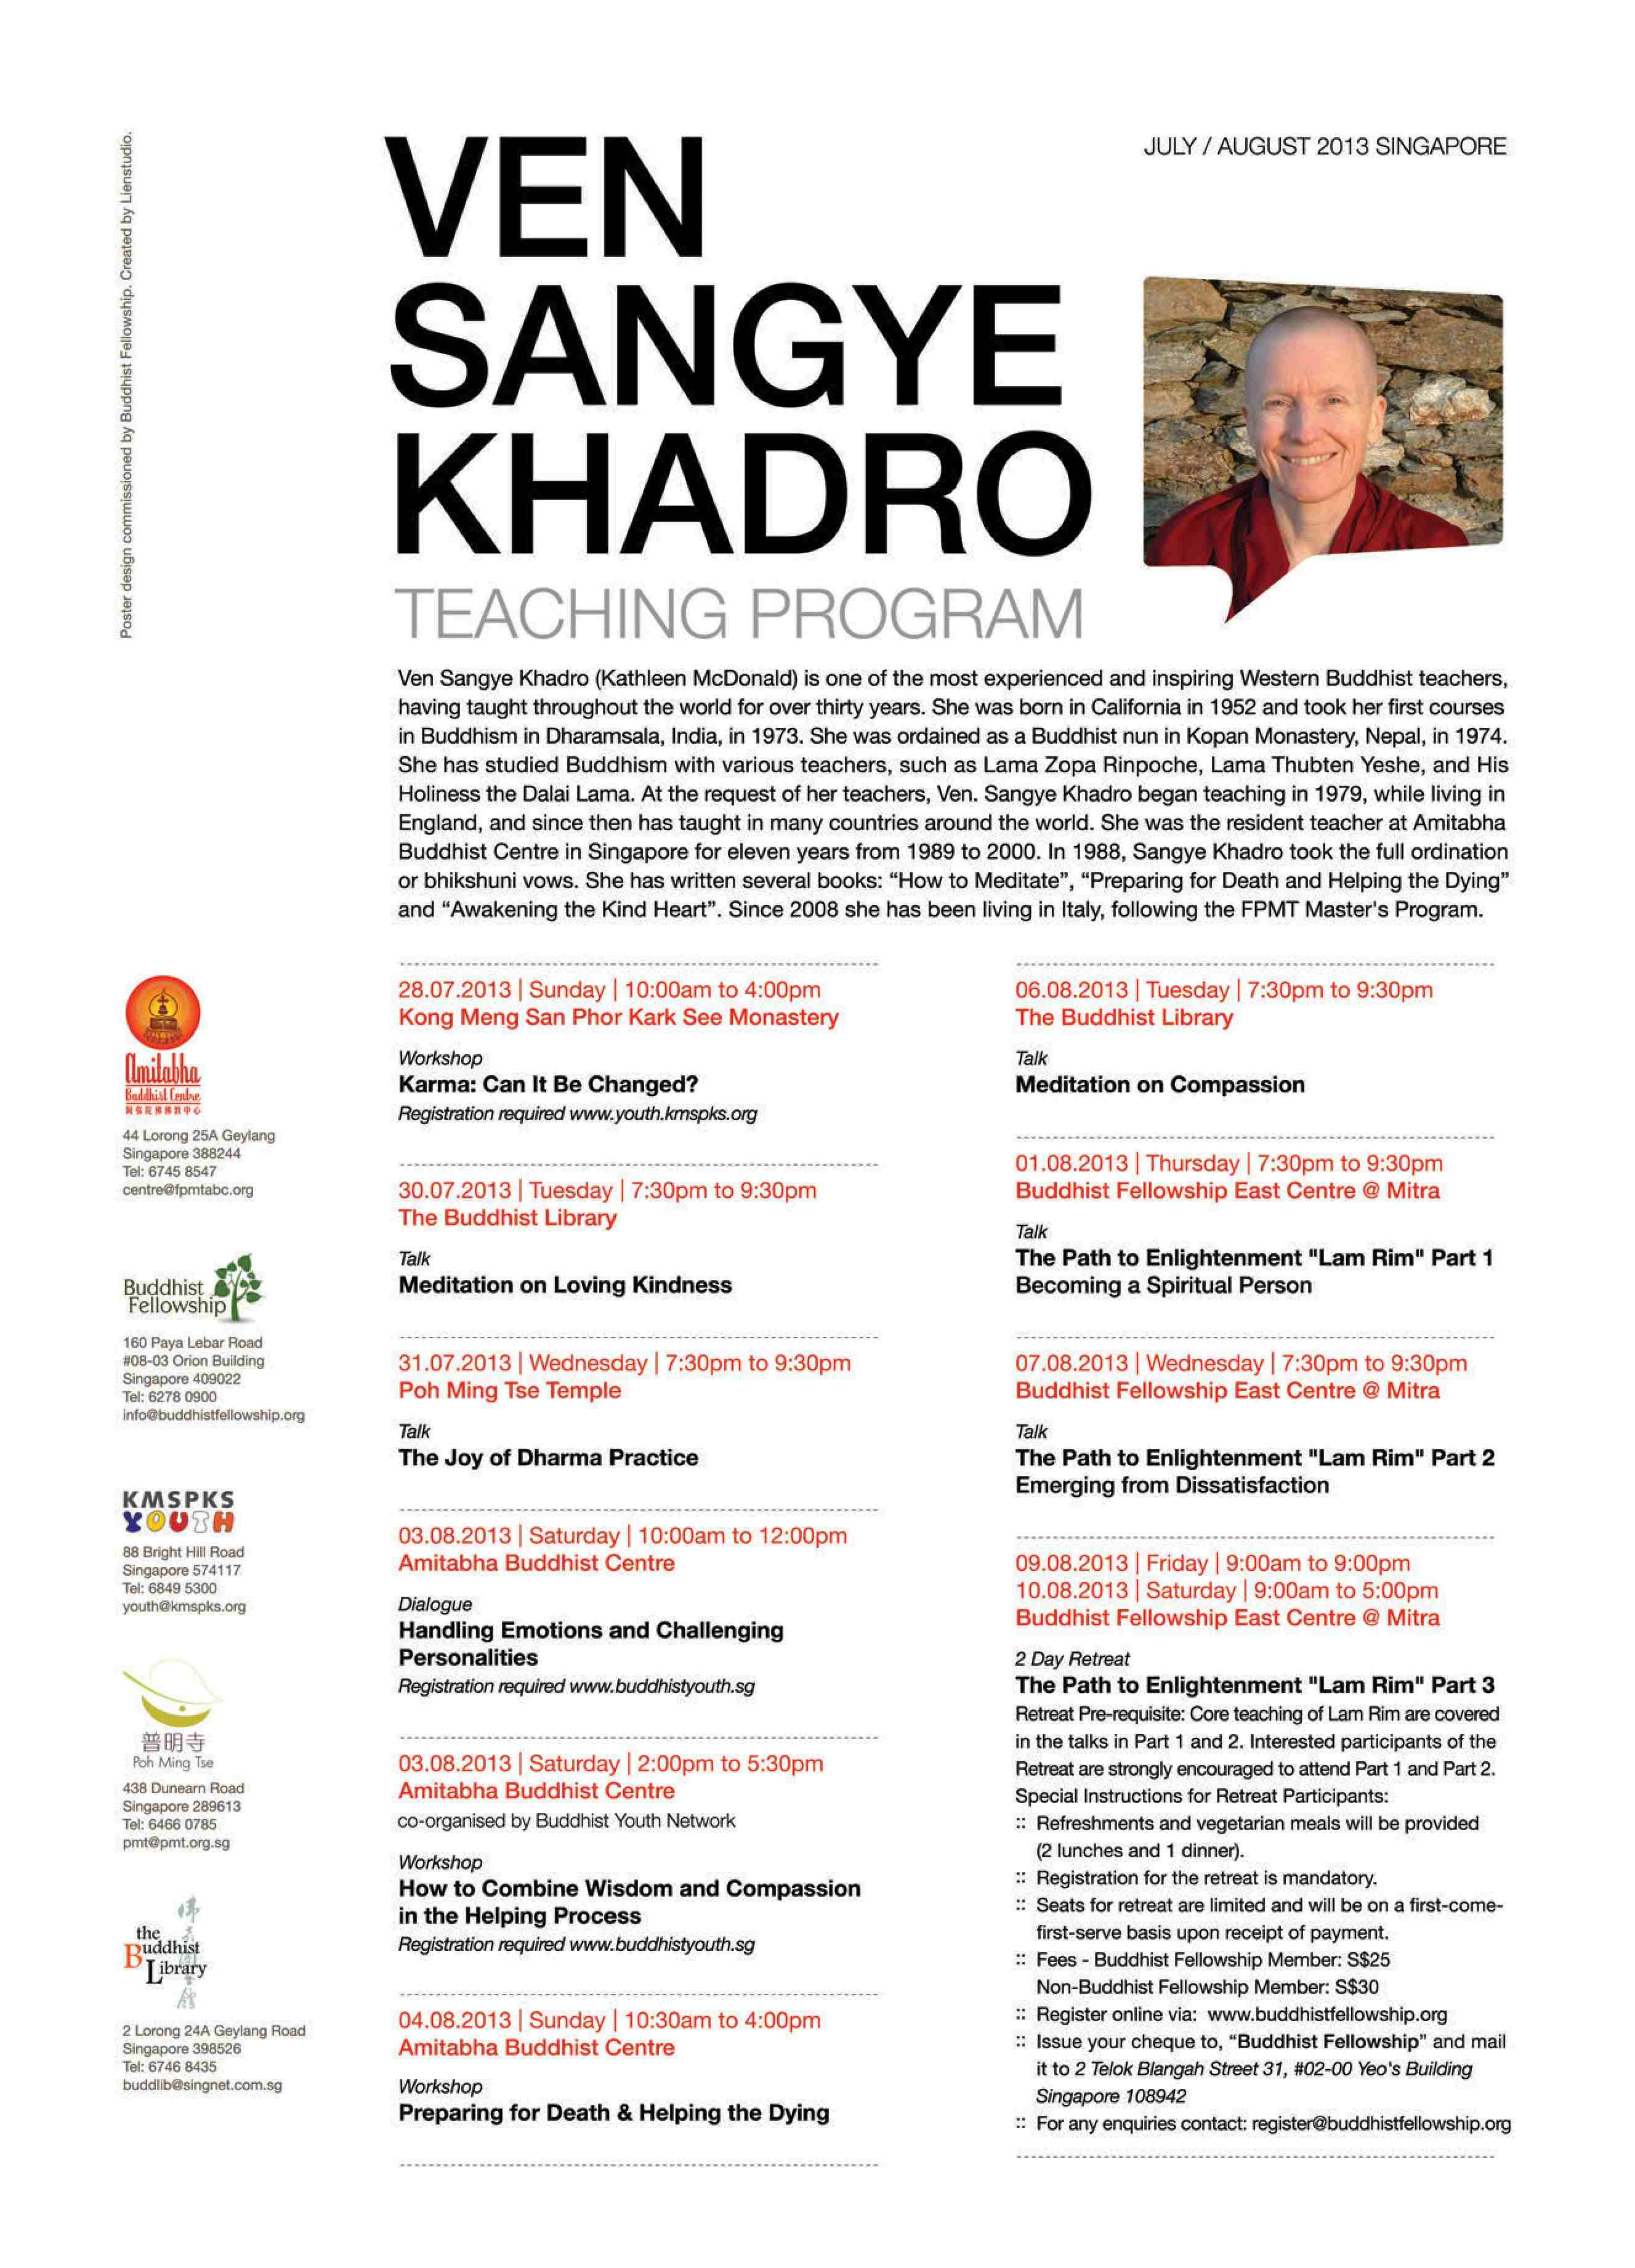 Sangye Khadro Teaching Program in SG - 2013